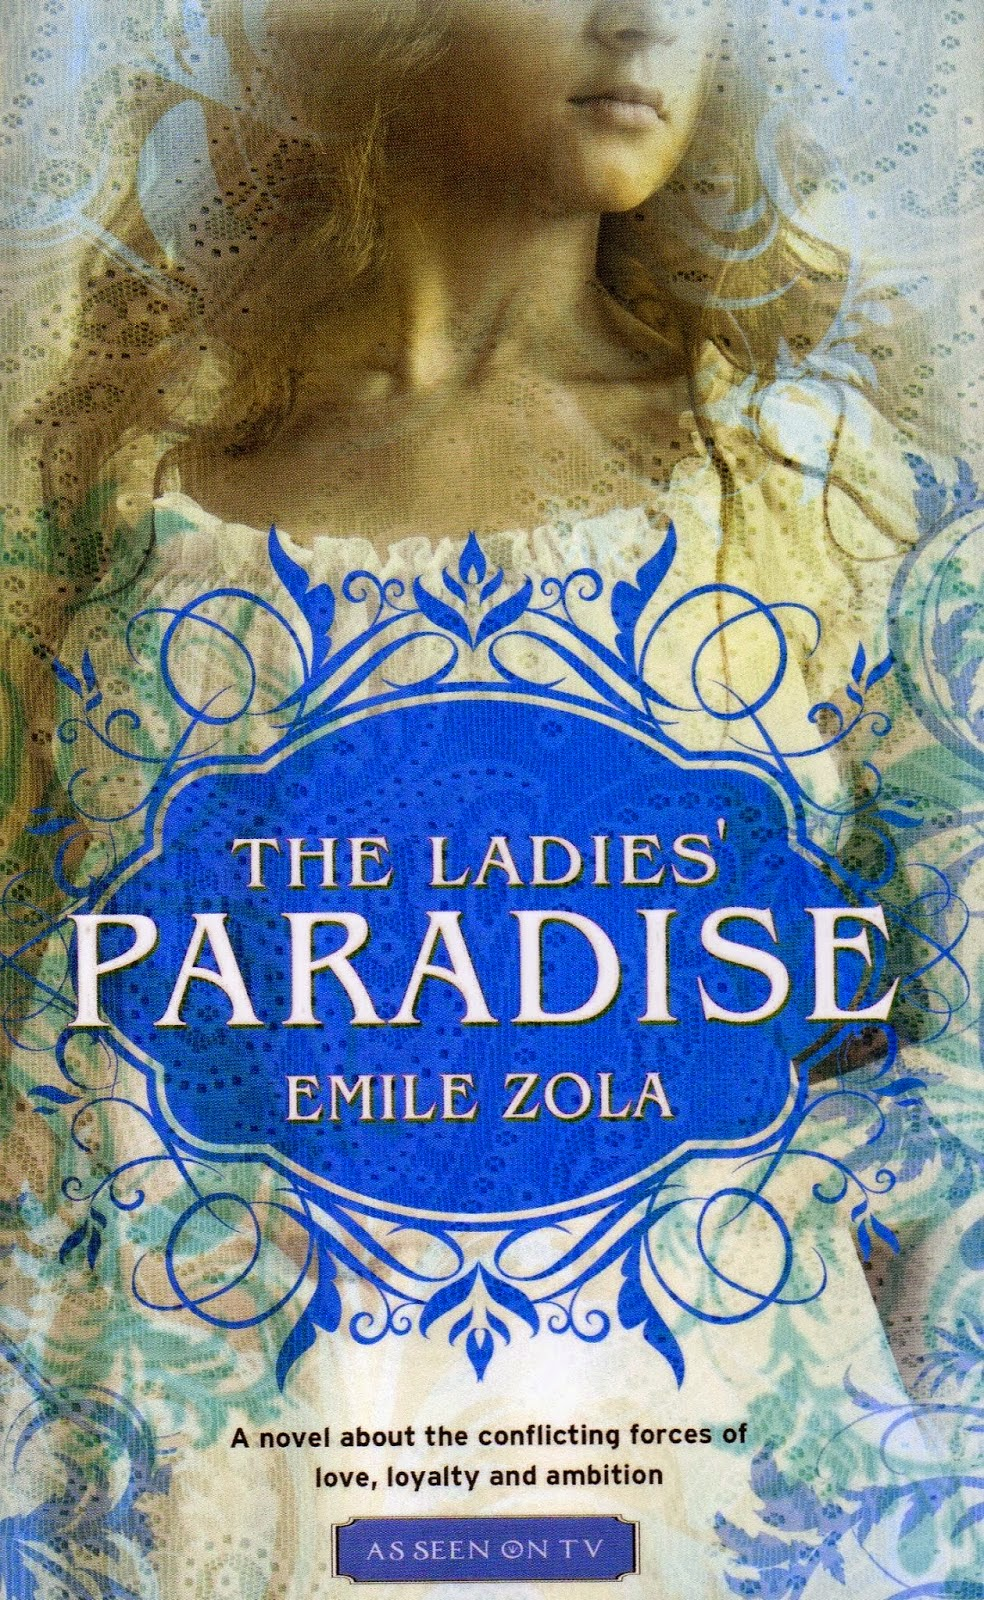 the ladies' paradise emile zola book cover